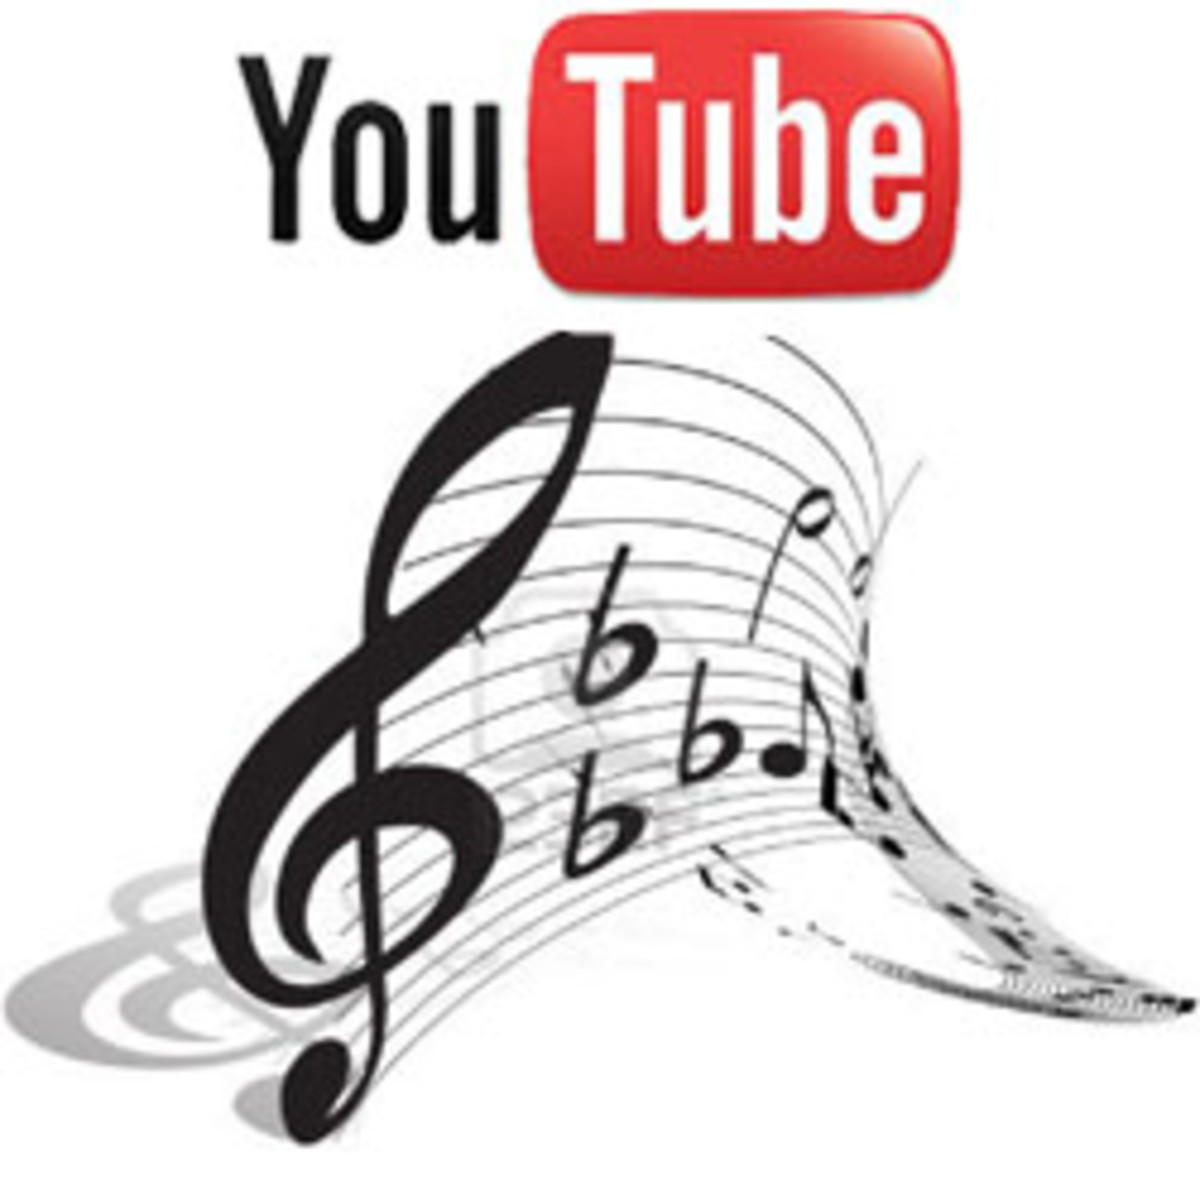 Youtube Music - Copyright information